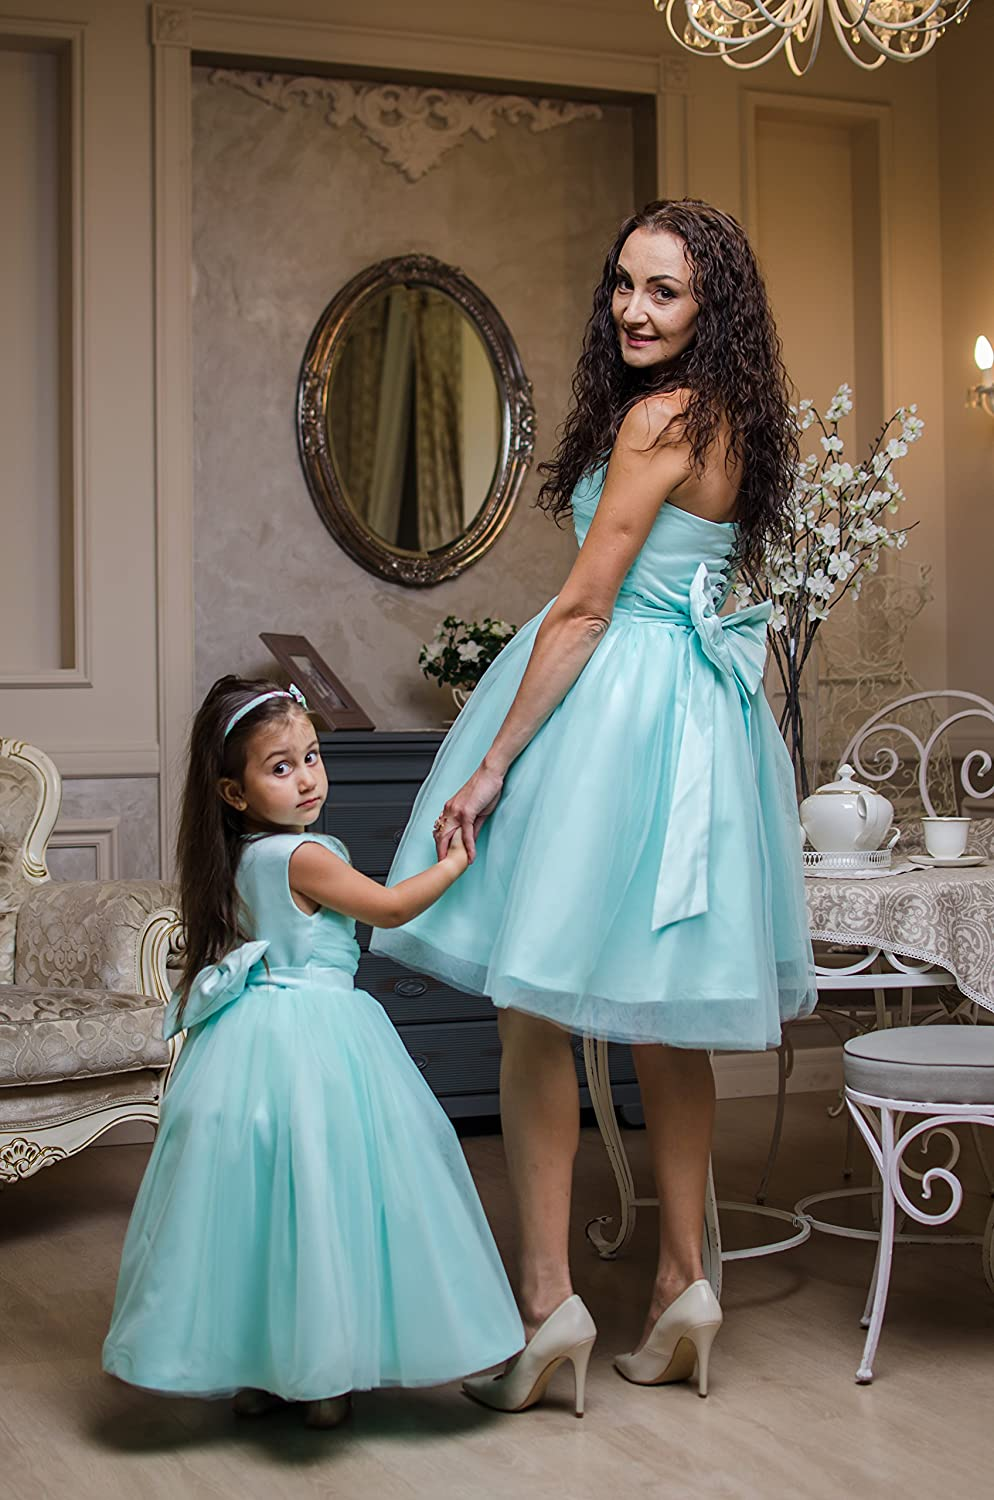 birthday matching clothes mom and daughter the same together formal family outfit Green mint matching tulle skirts for mommy and me